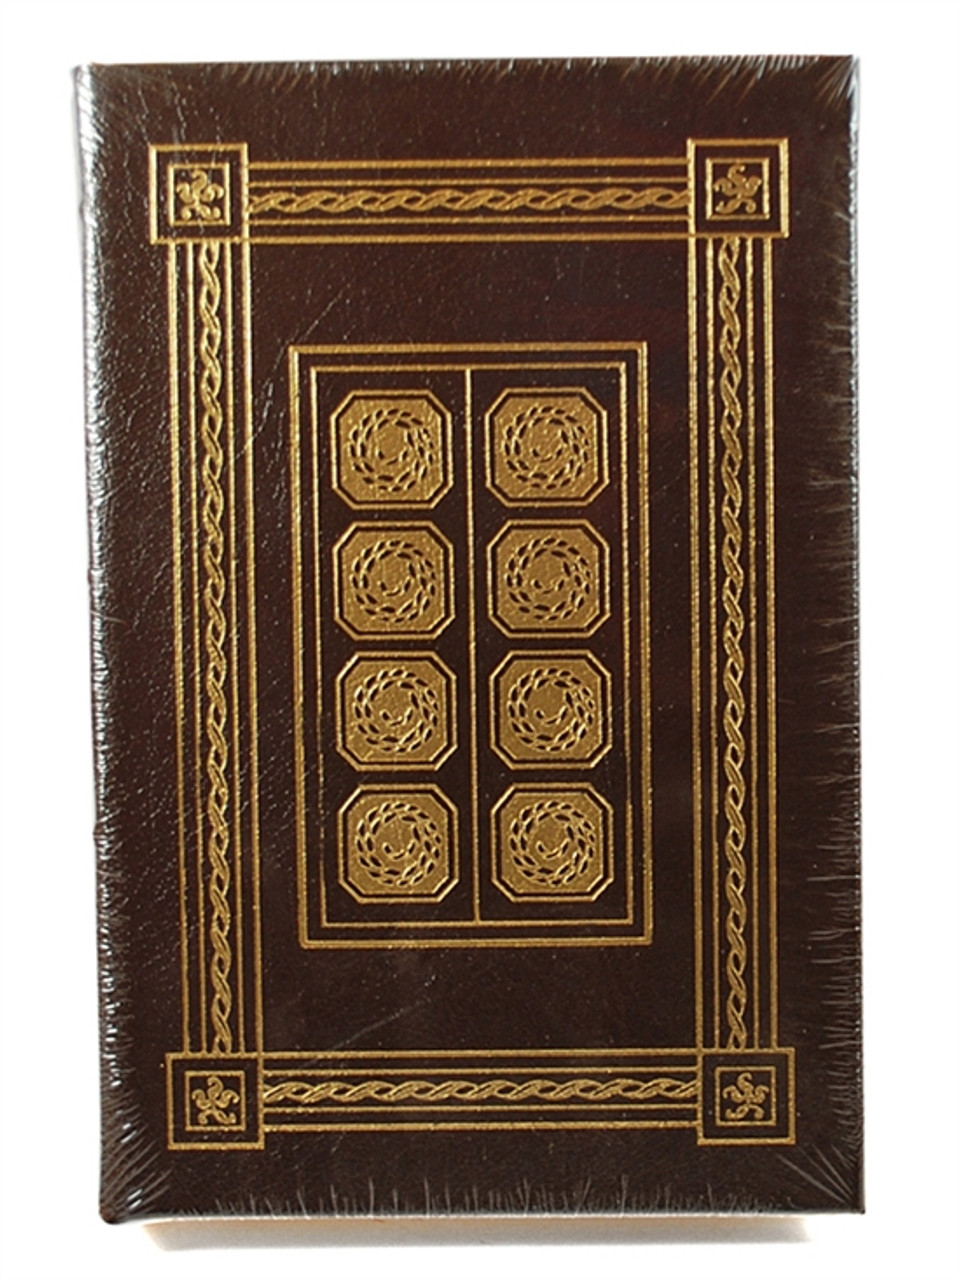 """Easton Press """"The Shipping News"""" Annie Proulx, Signed Limited Edition, Leather Bound Collector's Edition"""